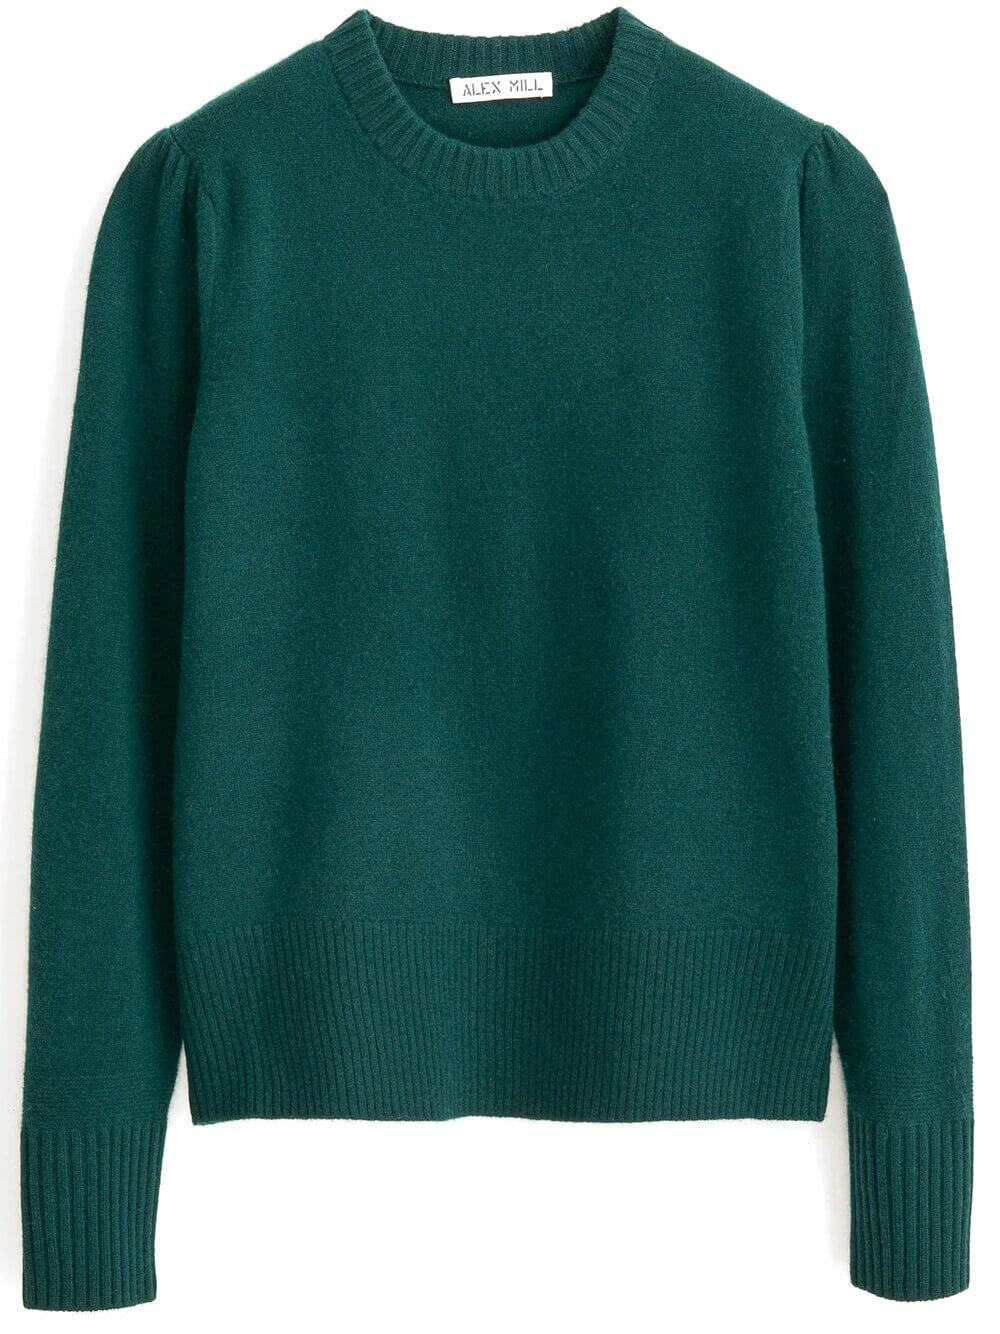 Claire Wool Cashmere Sweater Item # 207-WW037-2036